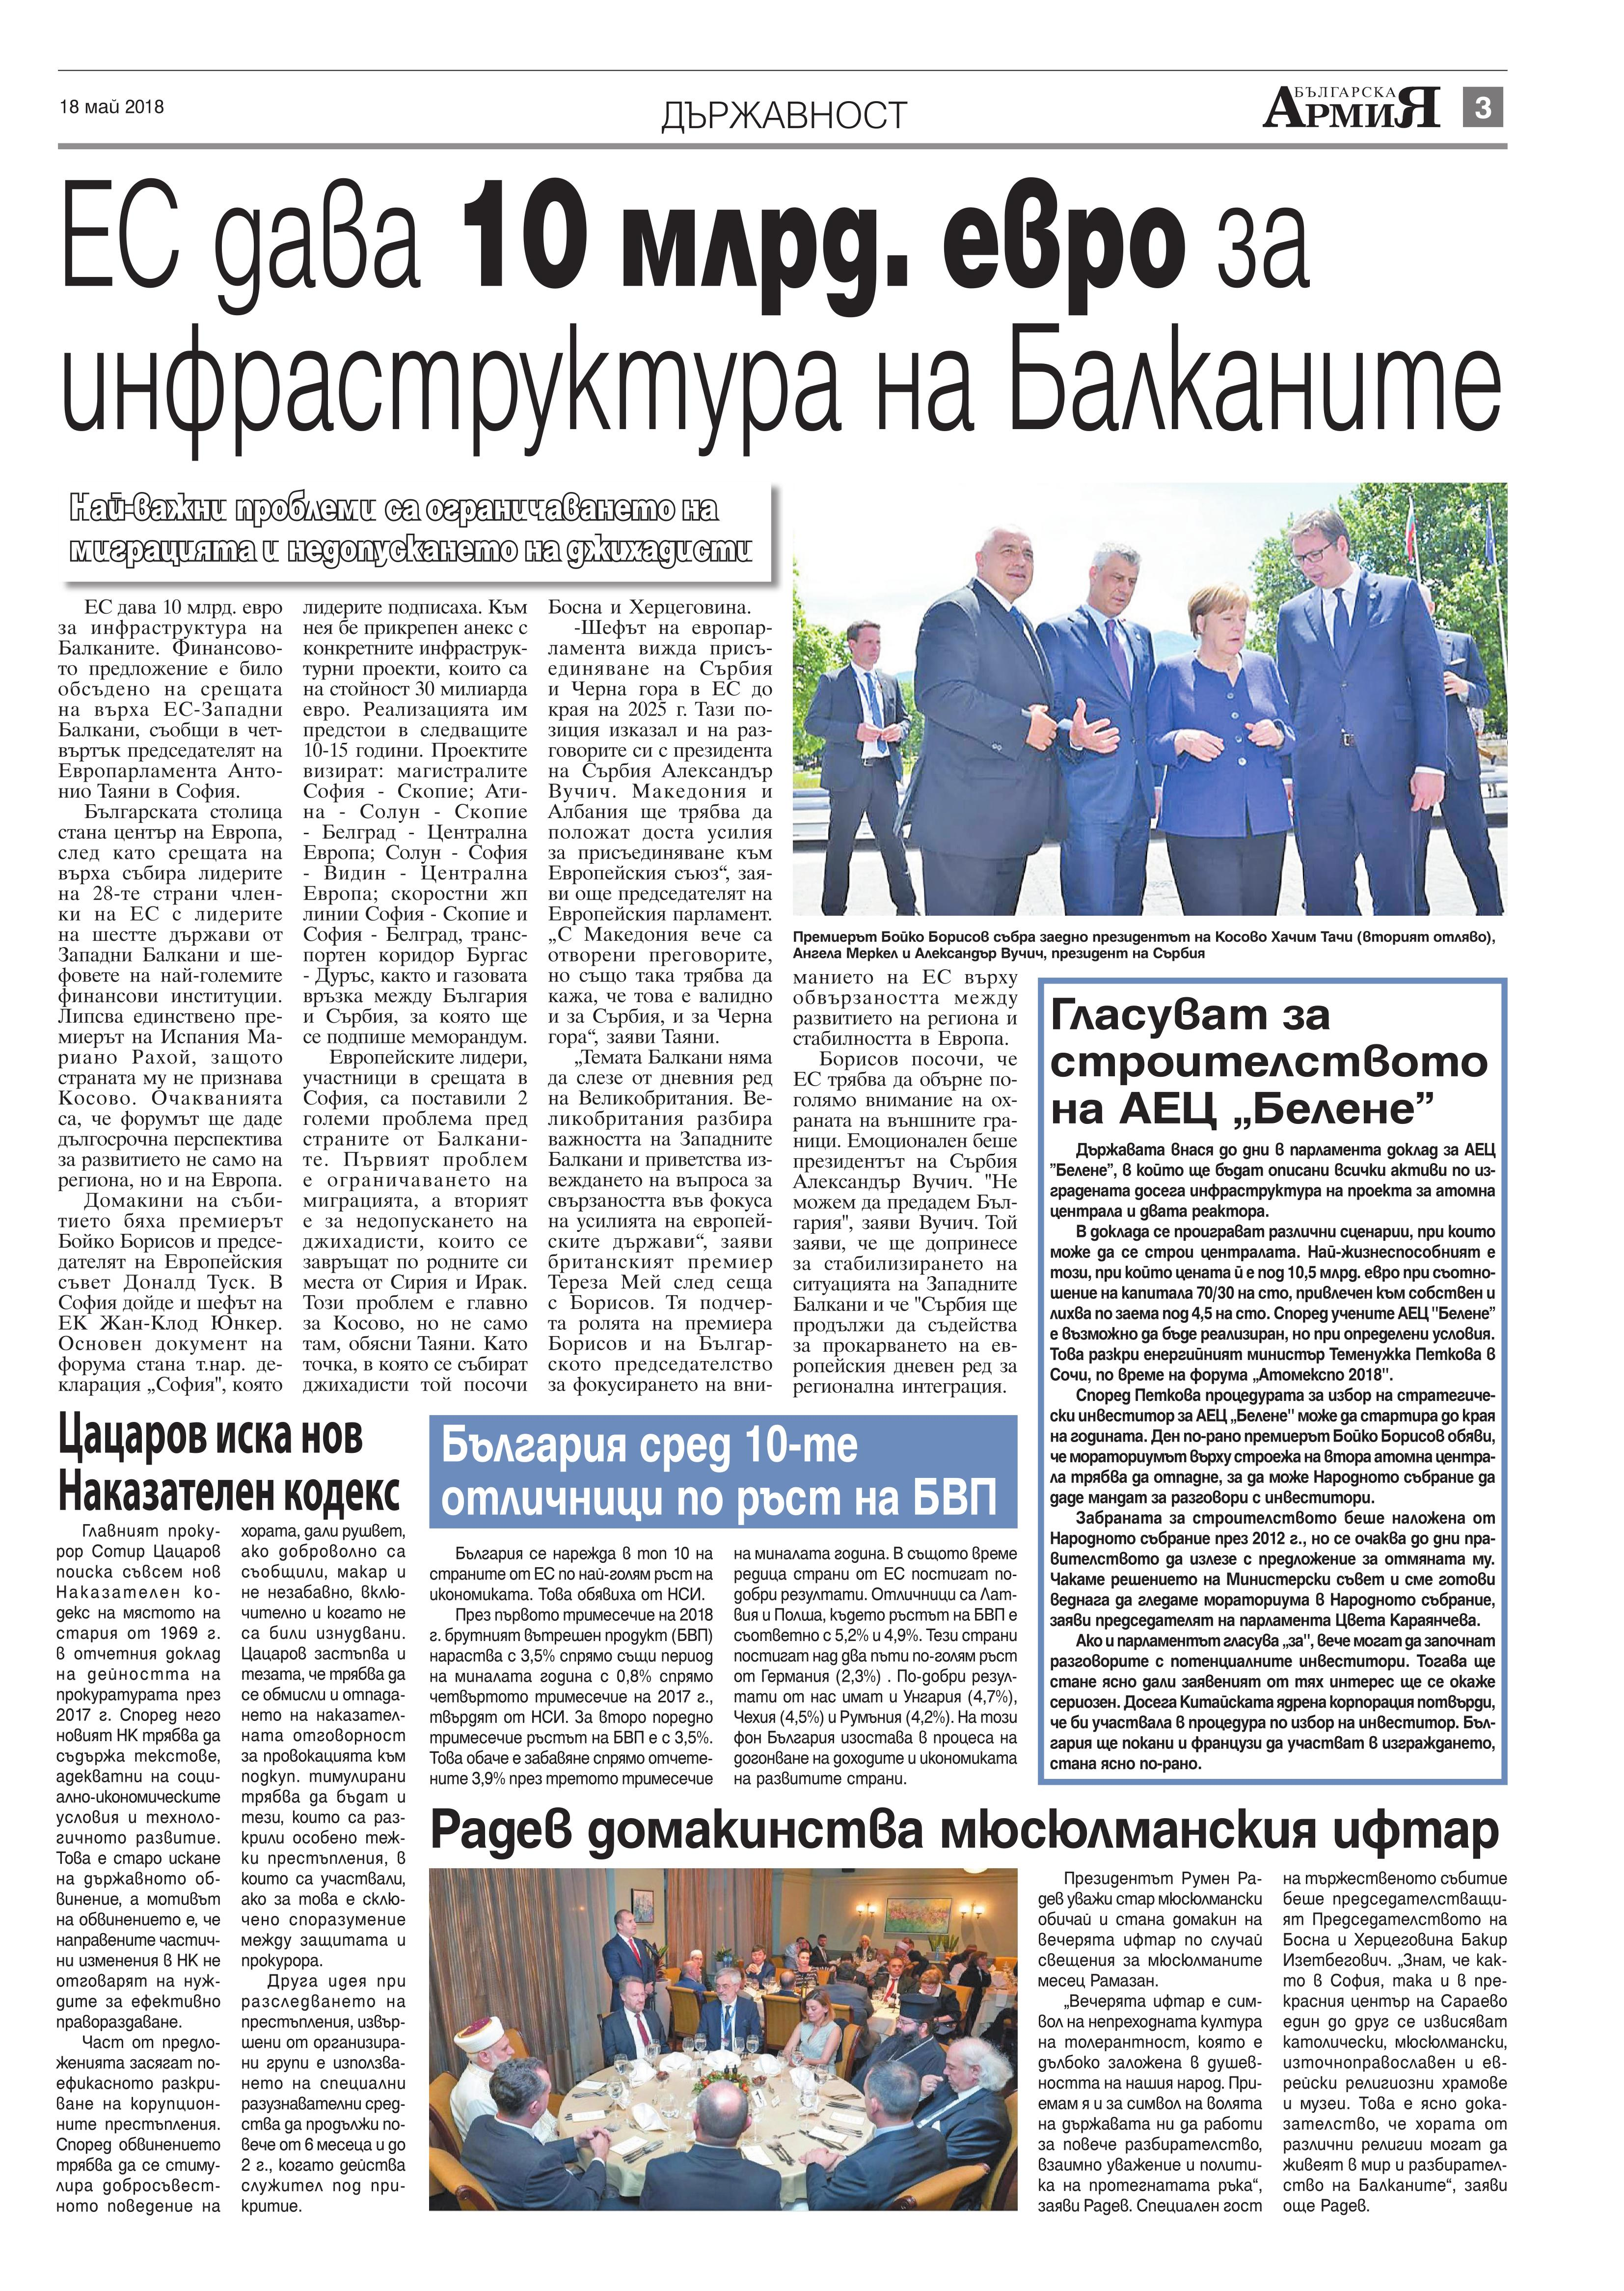 http://armymedia.bg/wp-content/uploads/2015/06/03.page1_-48.jpg